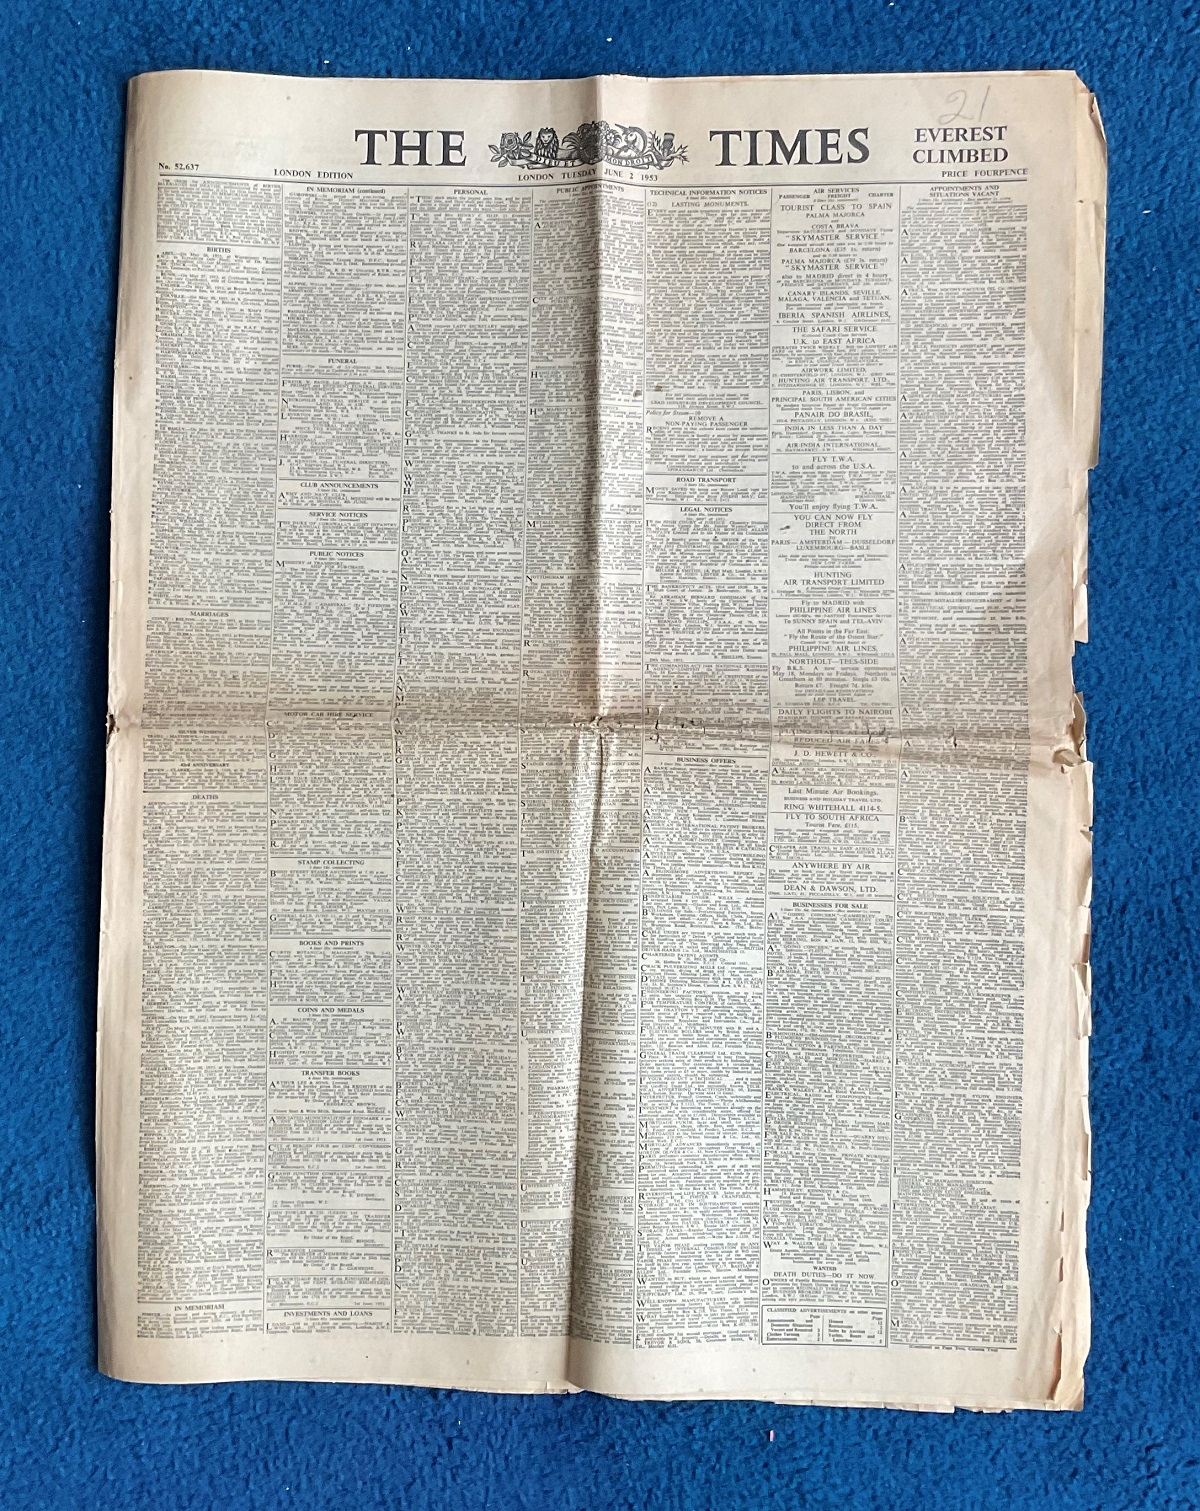 1953 The Times Newspaper June 2nd London Edition Ever Climbed achieved on the 29th of May 1953 by